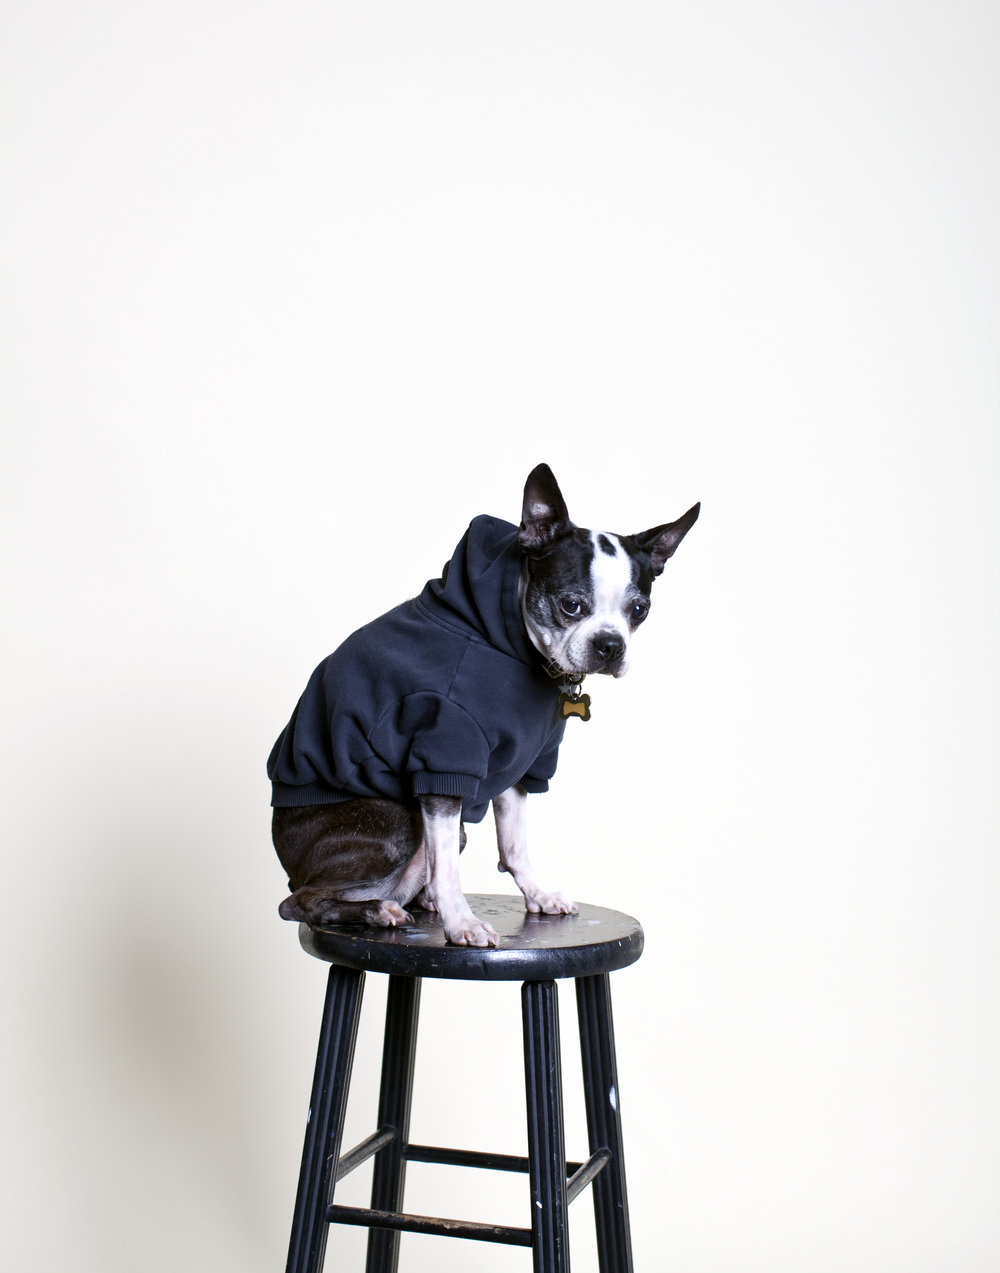 Pancake, age 10, testing lights in the studio.